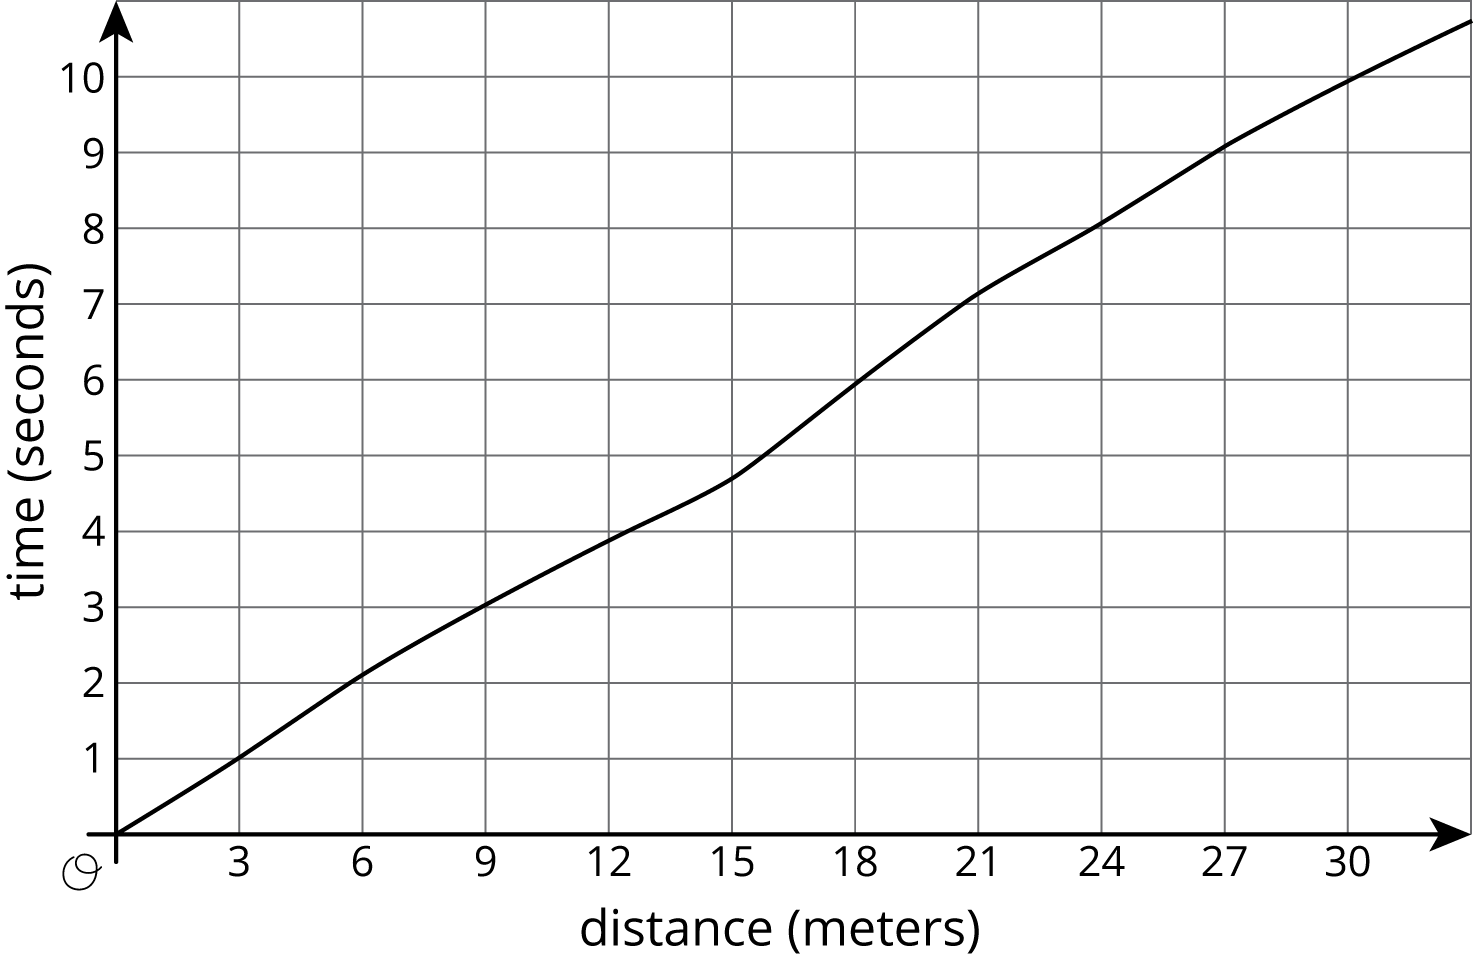 "The graph of a curve in the coordinate plane with the origin labeled ""O"". The horizontal axis is labeled ""distance, in meters"" and the numbers 0 through 30, in increments of 3, are indicated. The vertical axis is labeled ""time, in seconds"" and the numbers 0 through 10 are indicated. The curve begins at the origin and moves steadily upward and to the right. The line passes through the points with approximate coordinates 3 comma 1, 12 comma 4, and 30 comma 10."